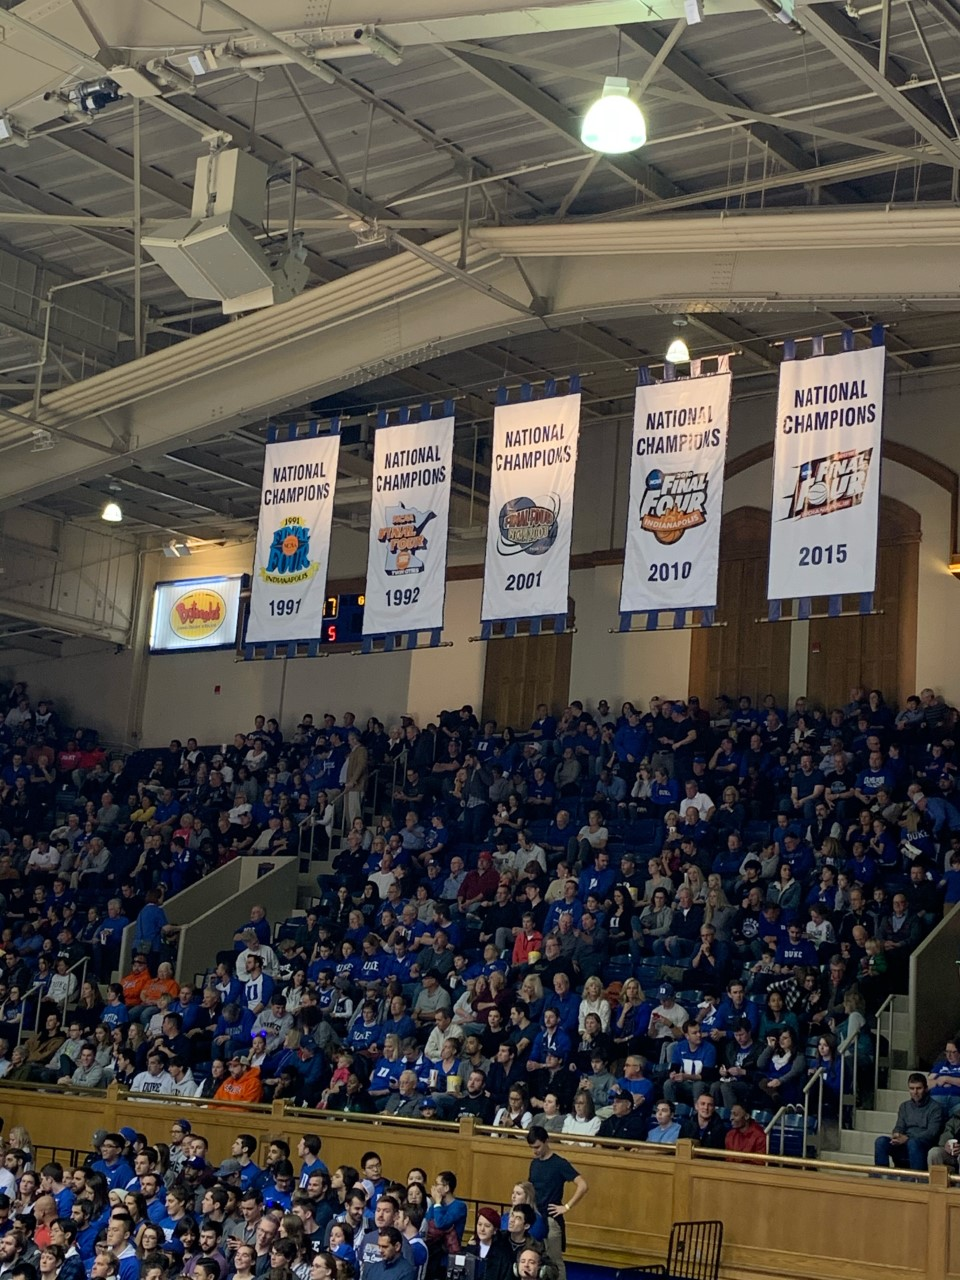 In addition to the retired jerseys, 5 banners hang on the opposite end of the gymnasium symbolizing the 5 National Championships won by each Duke program.